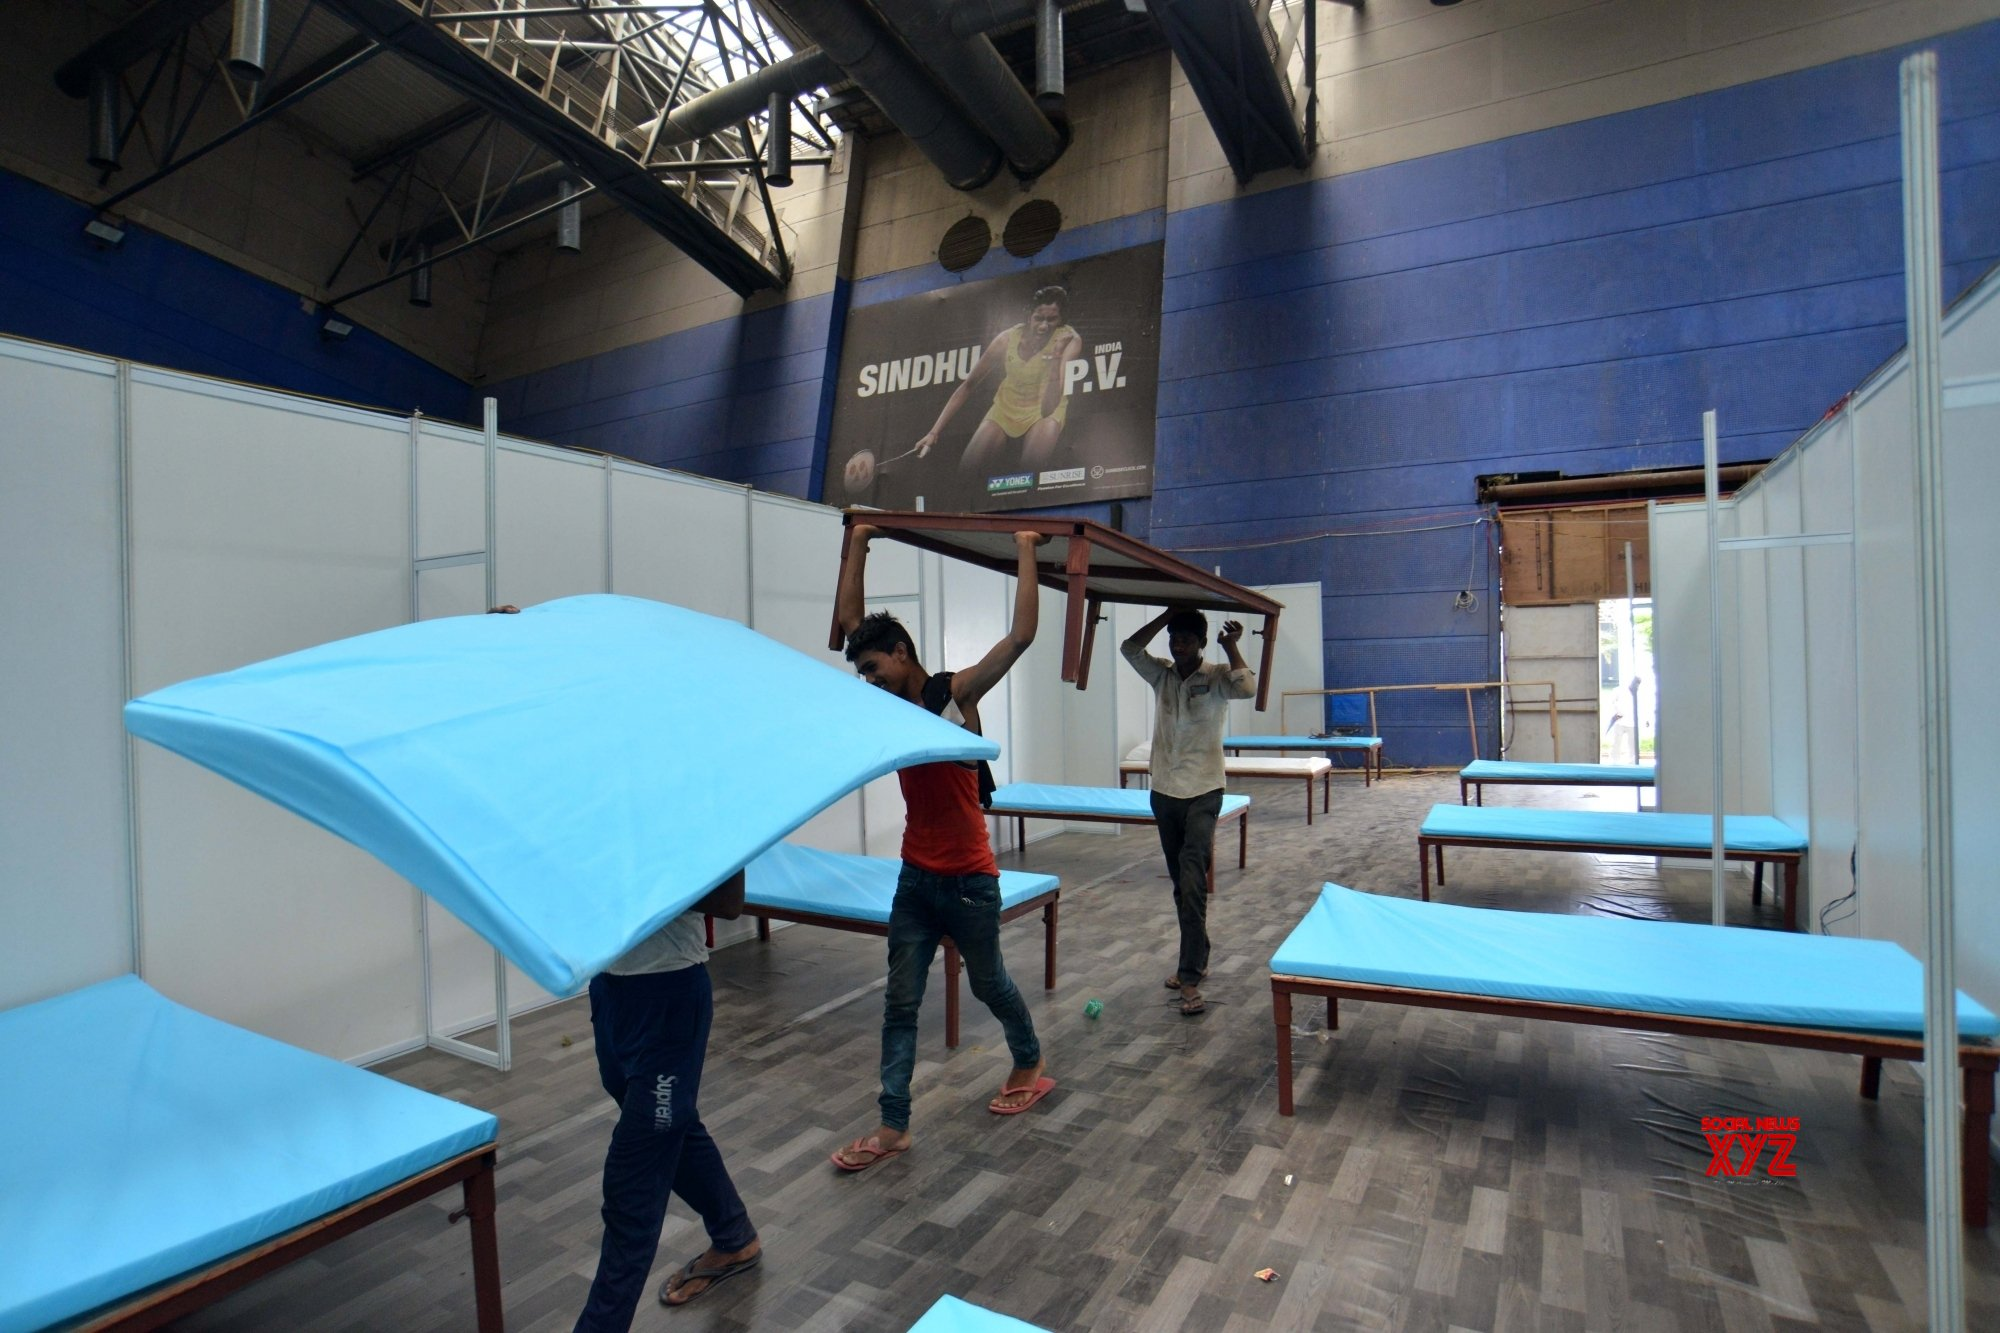 New Delhi: CWG indoor stadium being turned into Covid - 19 care centre #Gallery